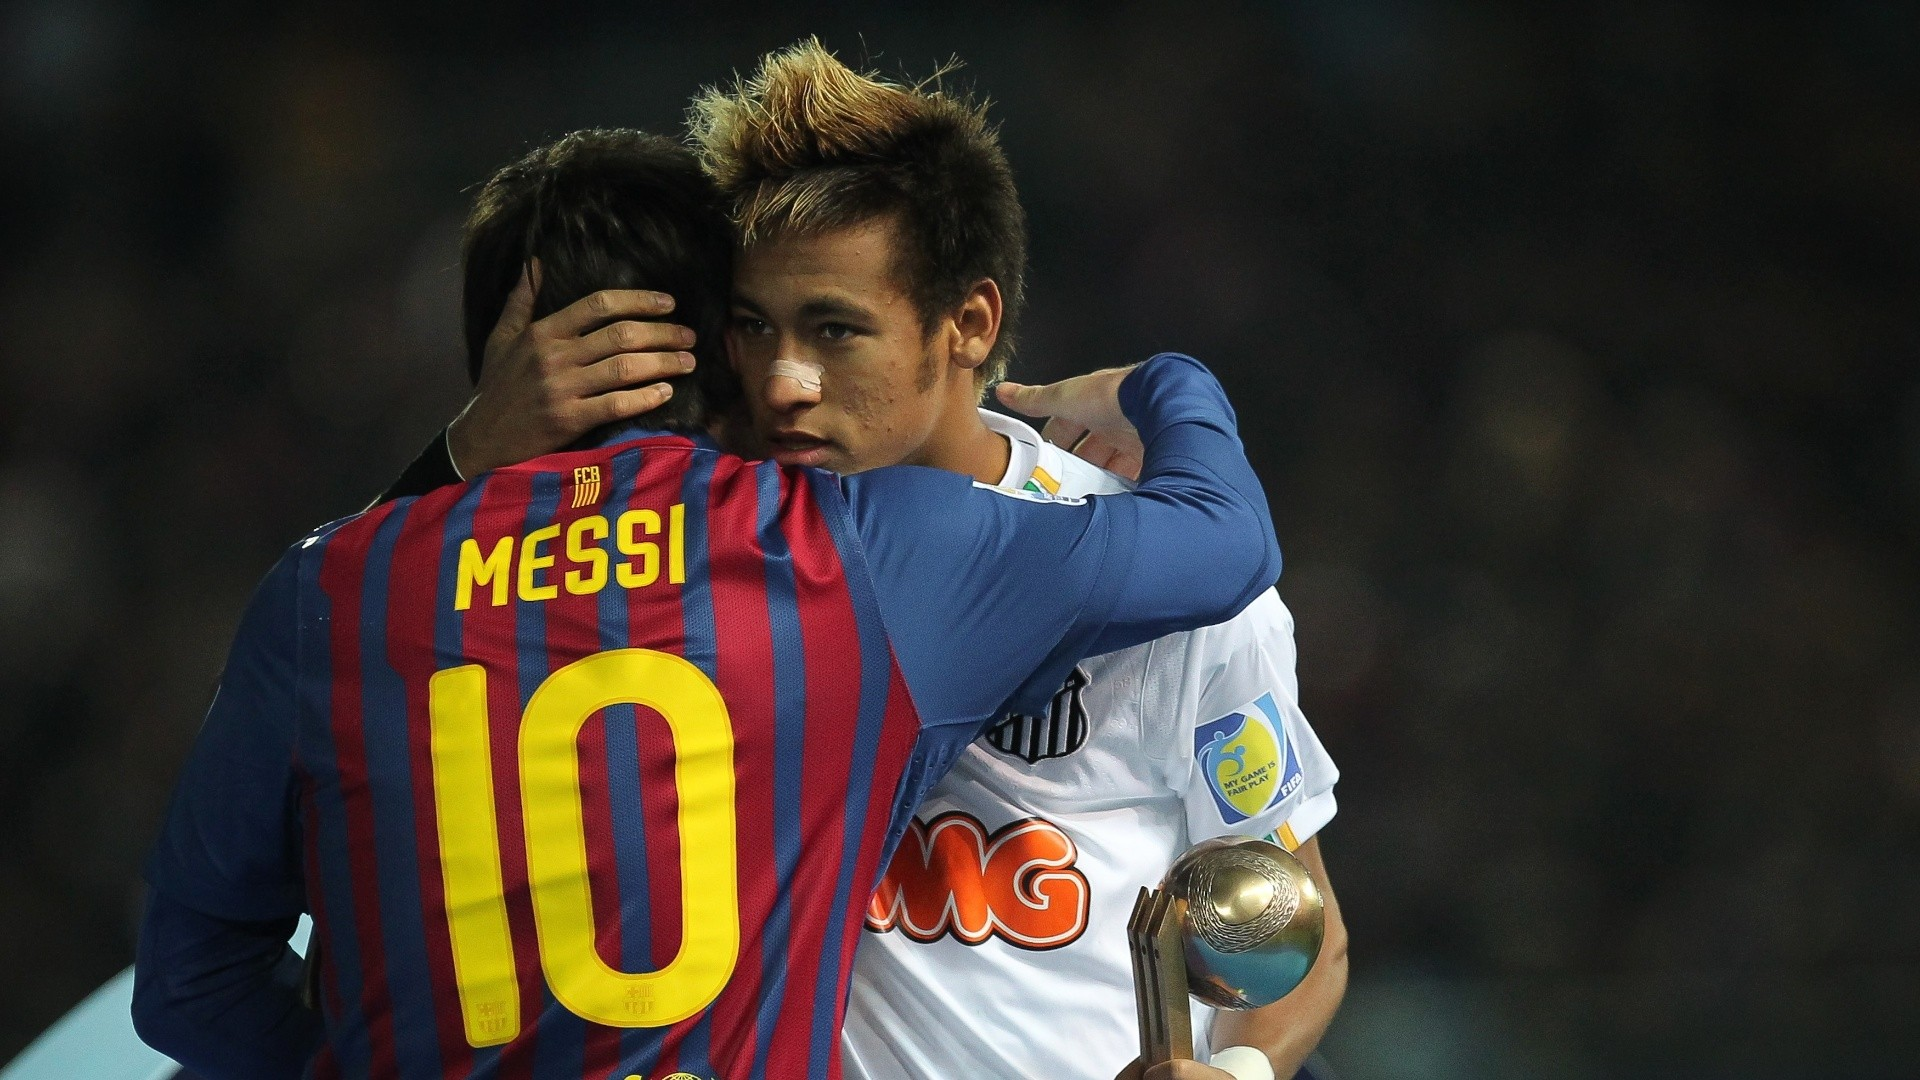 Neymar and Lionel Messi hugging each other 1920x1080